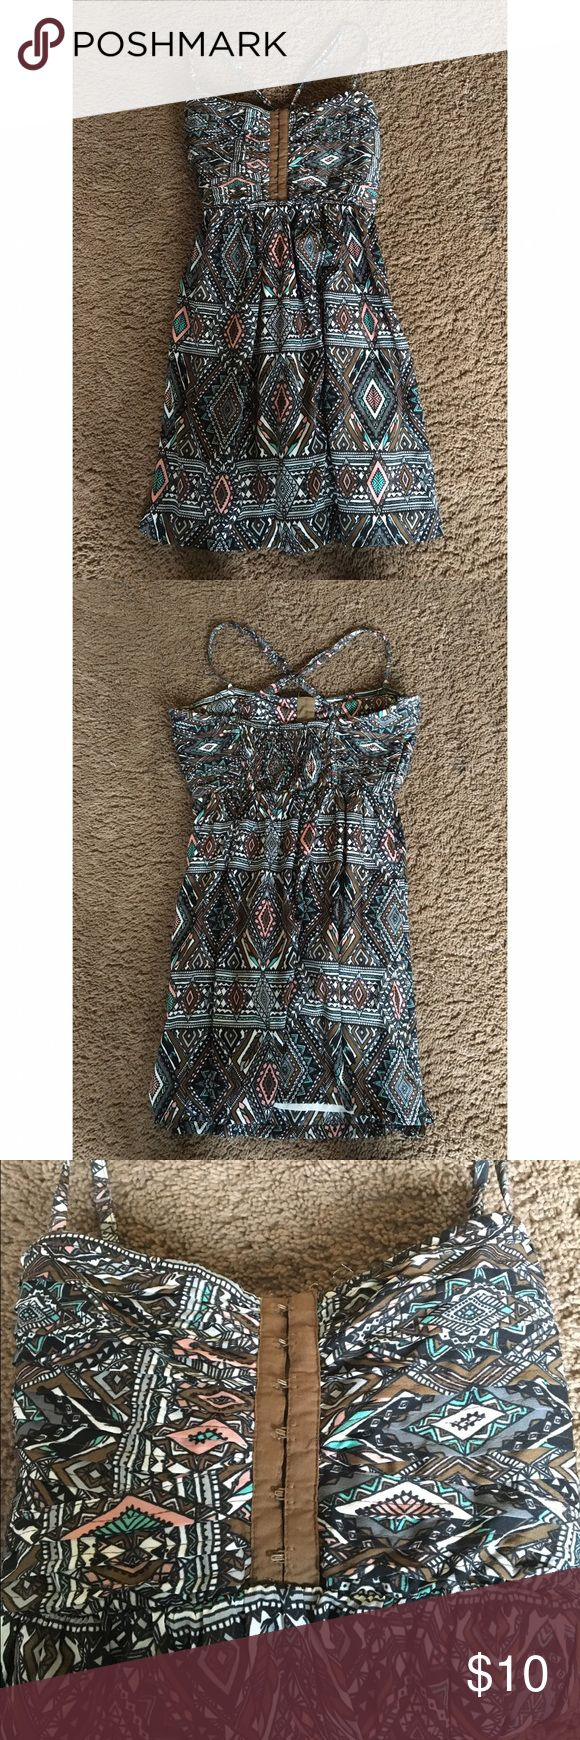 Billabong Sun Dress Super cute aztec print dress with crossed straps in back. Super flattering and great for spring and summer! :) Billabong Dresses Mini